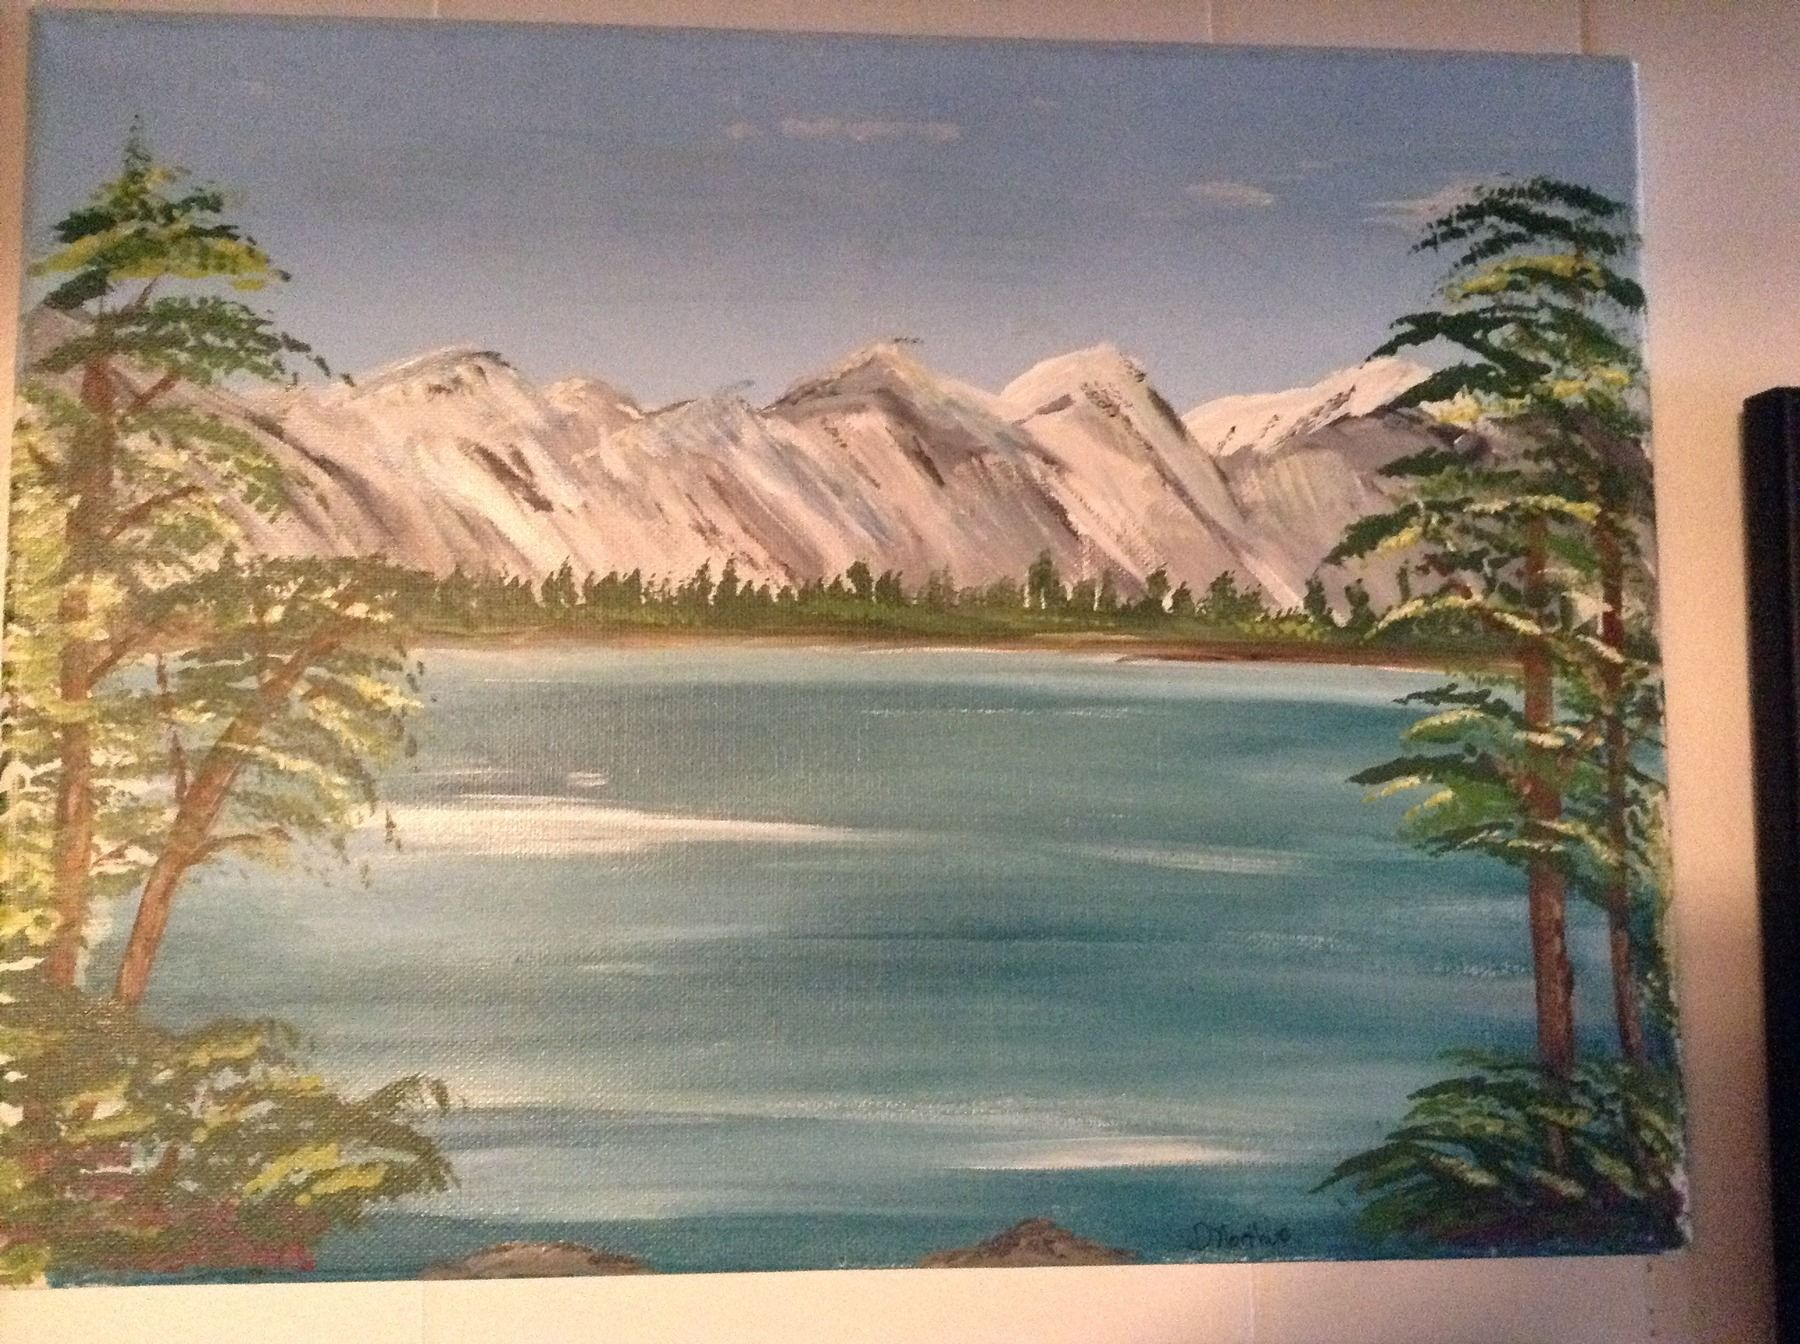 Done in acrylic on canvas this mountain scene with a beautiful lake and trees off to the side, soft colors and really makes you feel you are part of the picture